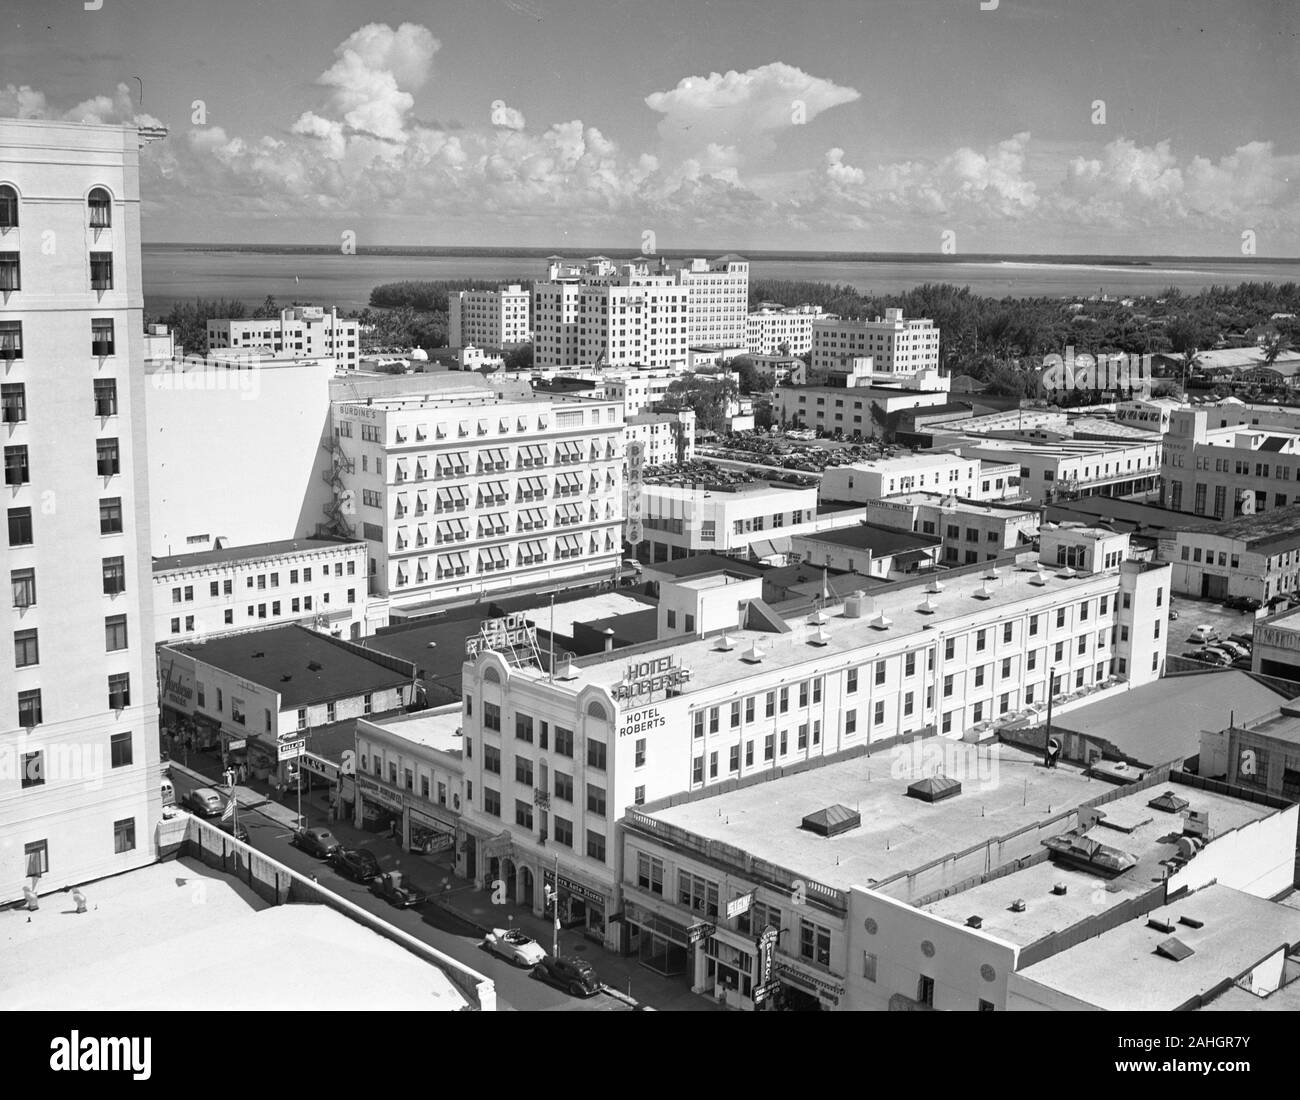 View of the skyline of Miami, 1942. Visible are several buildings such as the Hotel Roberts, the Dallas Park, and Burdine's Stock Photo